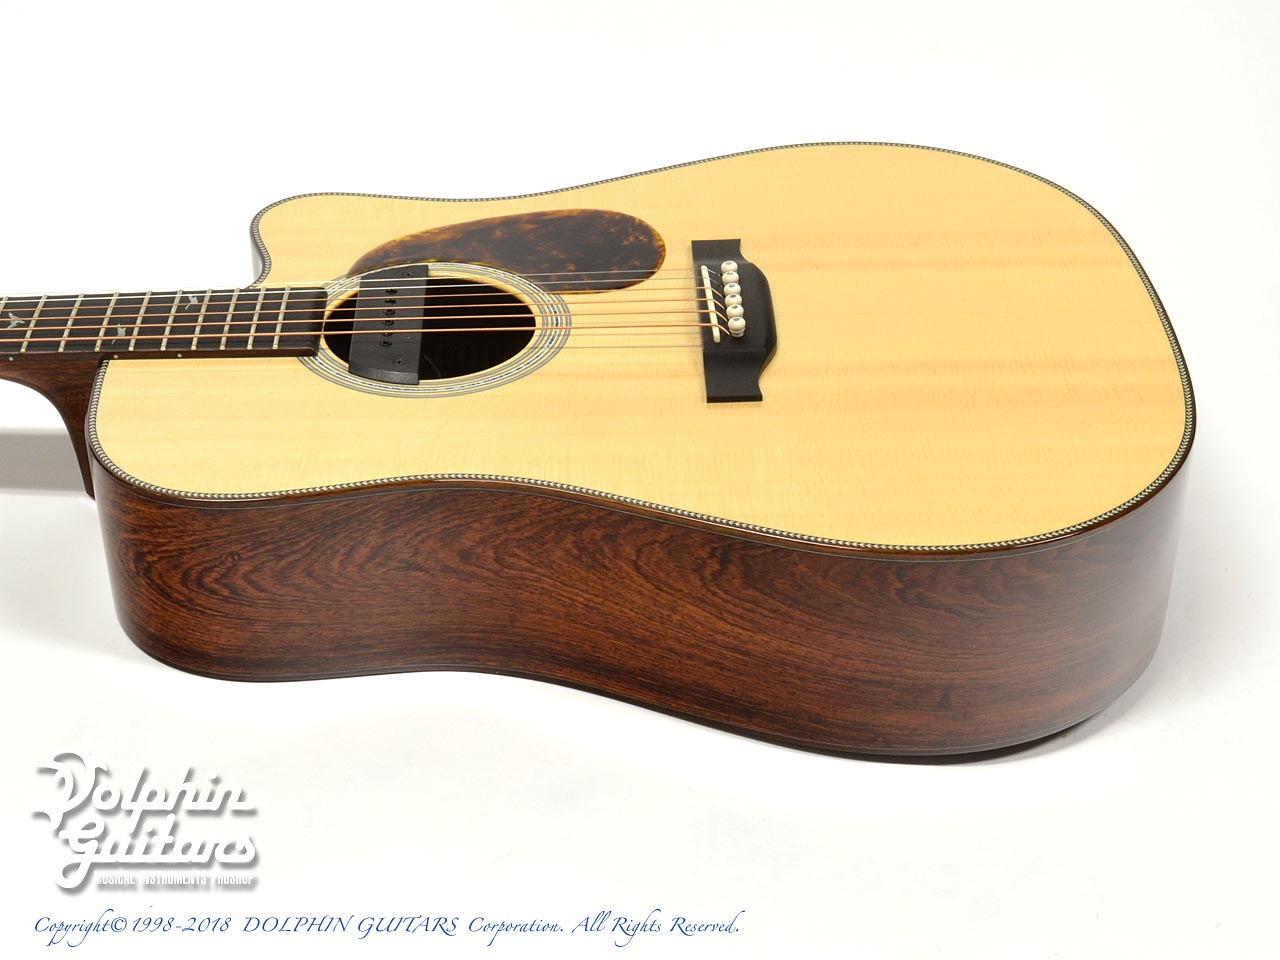 Greven Guitars Japan: Oshio-DC HR (Honduras Rosewood) w/RAPTOR SYSTEM by TRIAL  (2)